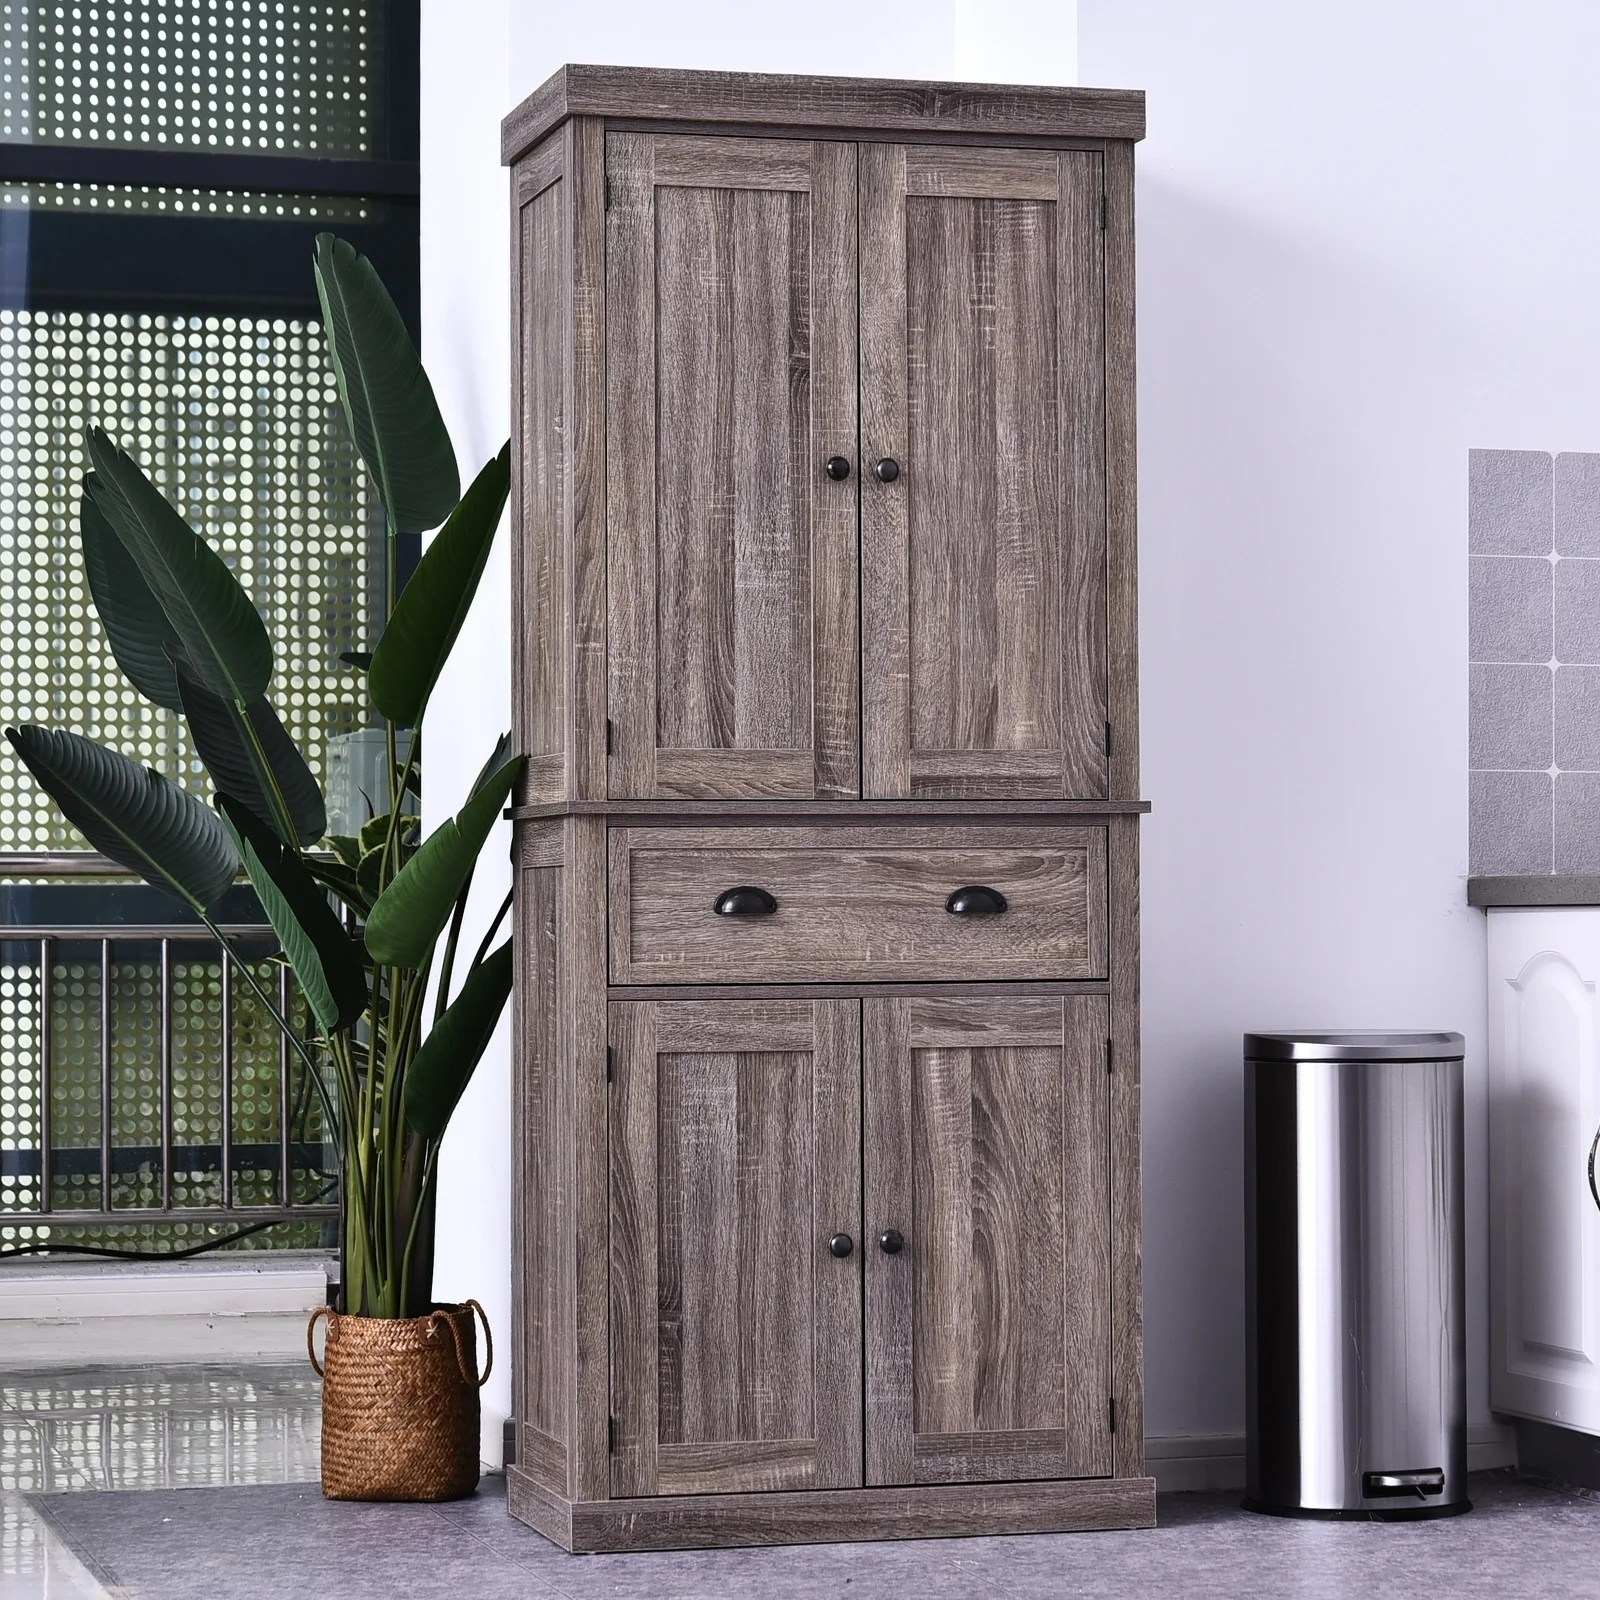 Homcom 72 H Traditional Colonial Freestanding Kitchen Bathroom Storage Pantry With 1 Center Drawer And 2 Cabinets N A Overstock 30570079